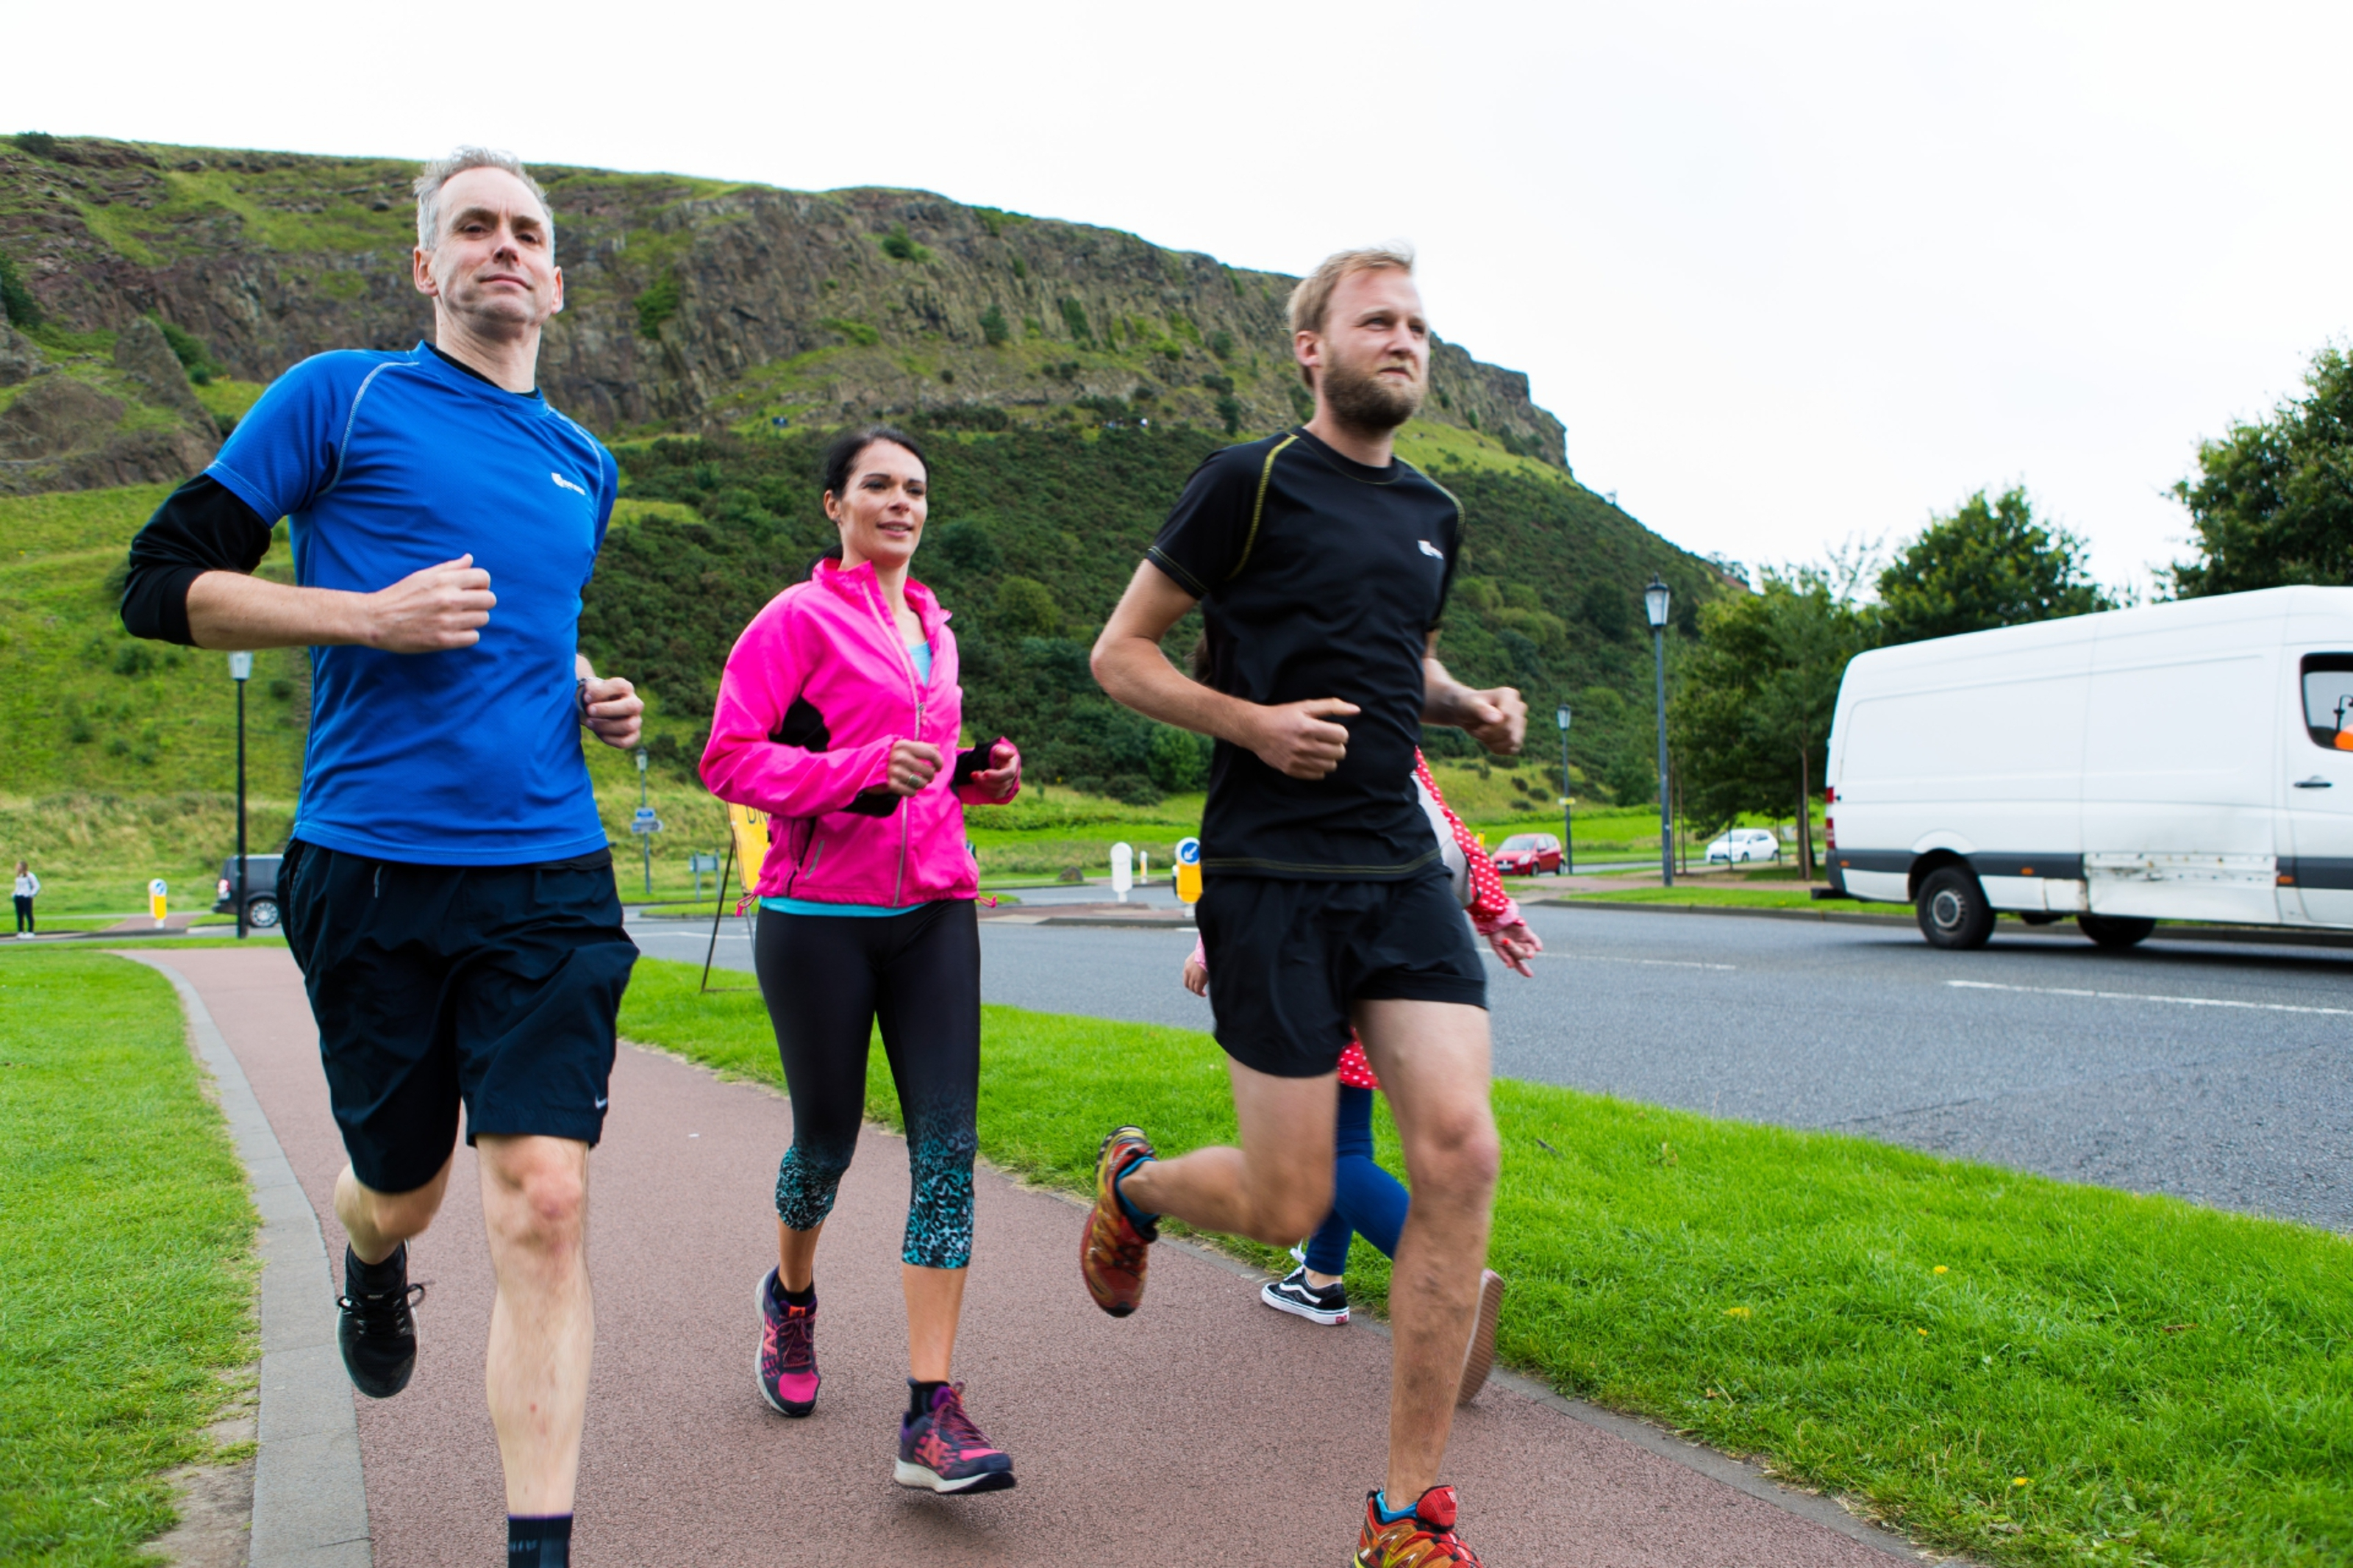 Gayle Ritchie goes for a training recce run in the shadow of Arthur's Seat with Paddy Cuthbert and Stewart Caithness.